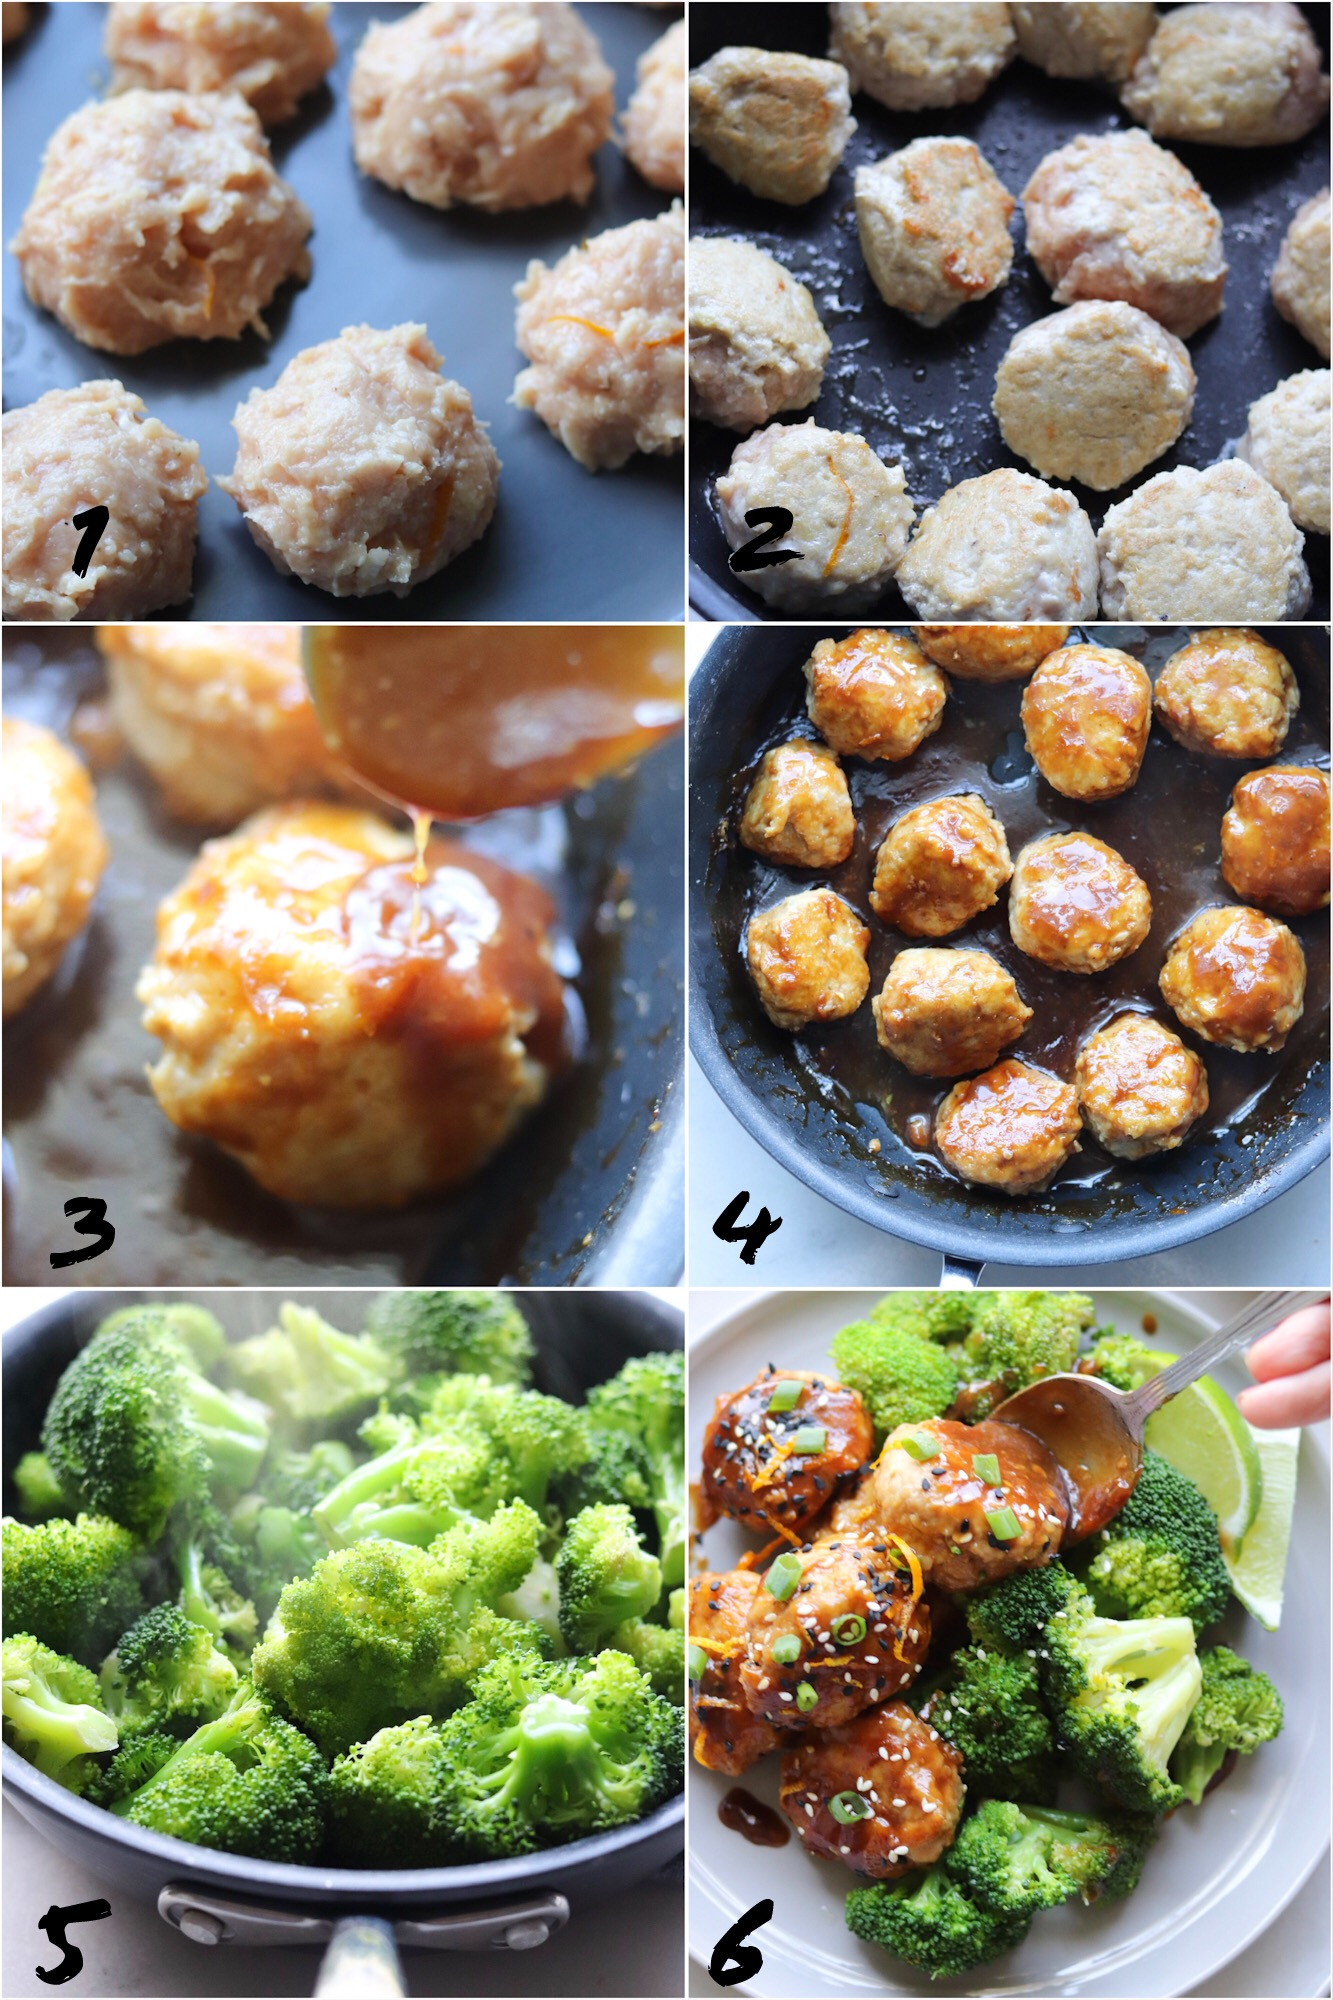 A collage with Step by Step instructions on how to cook the recipe. Form the meatballs, brown the meatballs, simmer the sauce, steam the broccoli, and then serve!